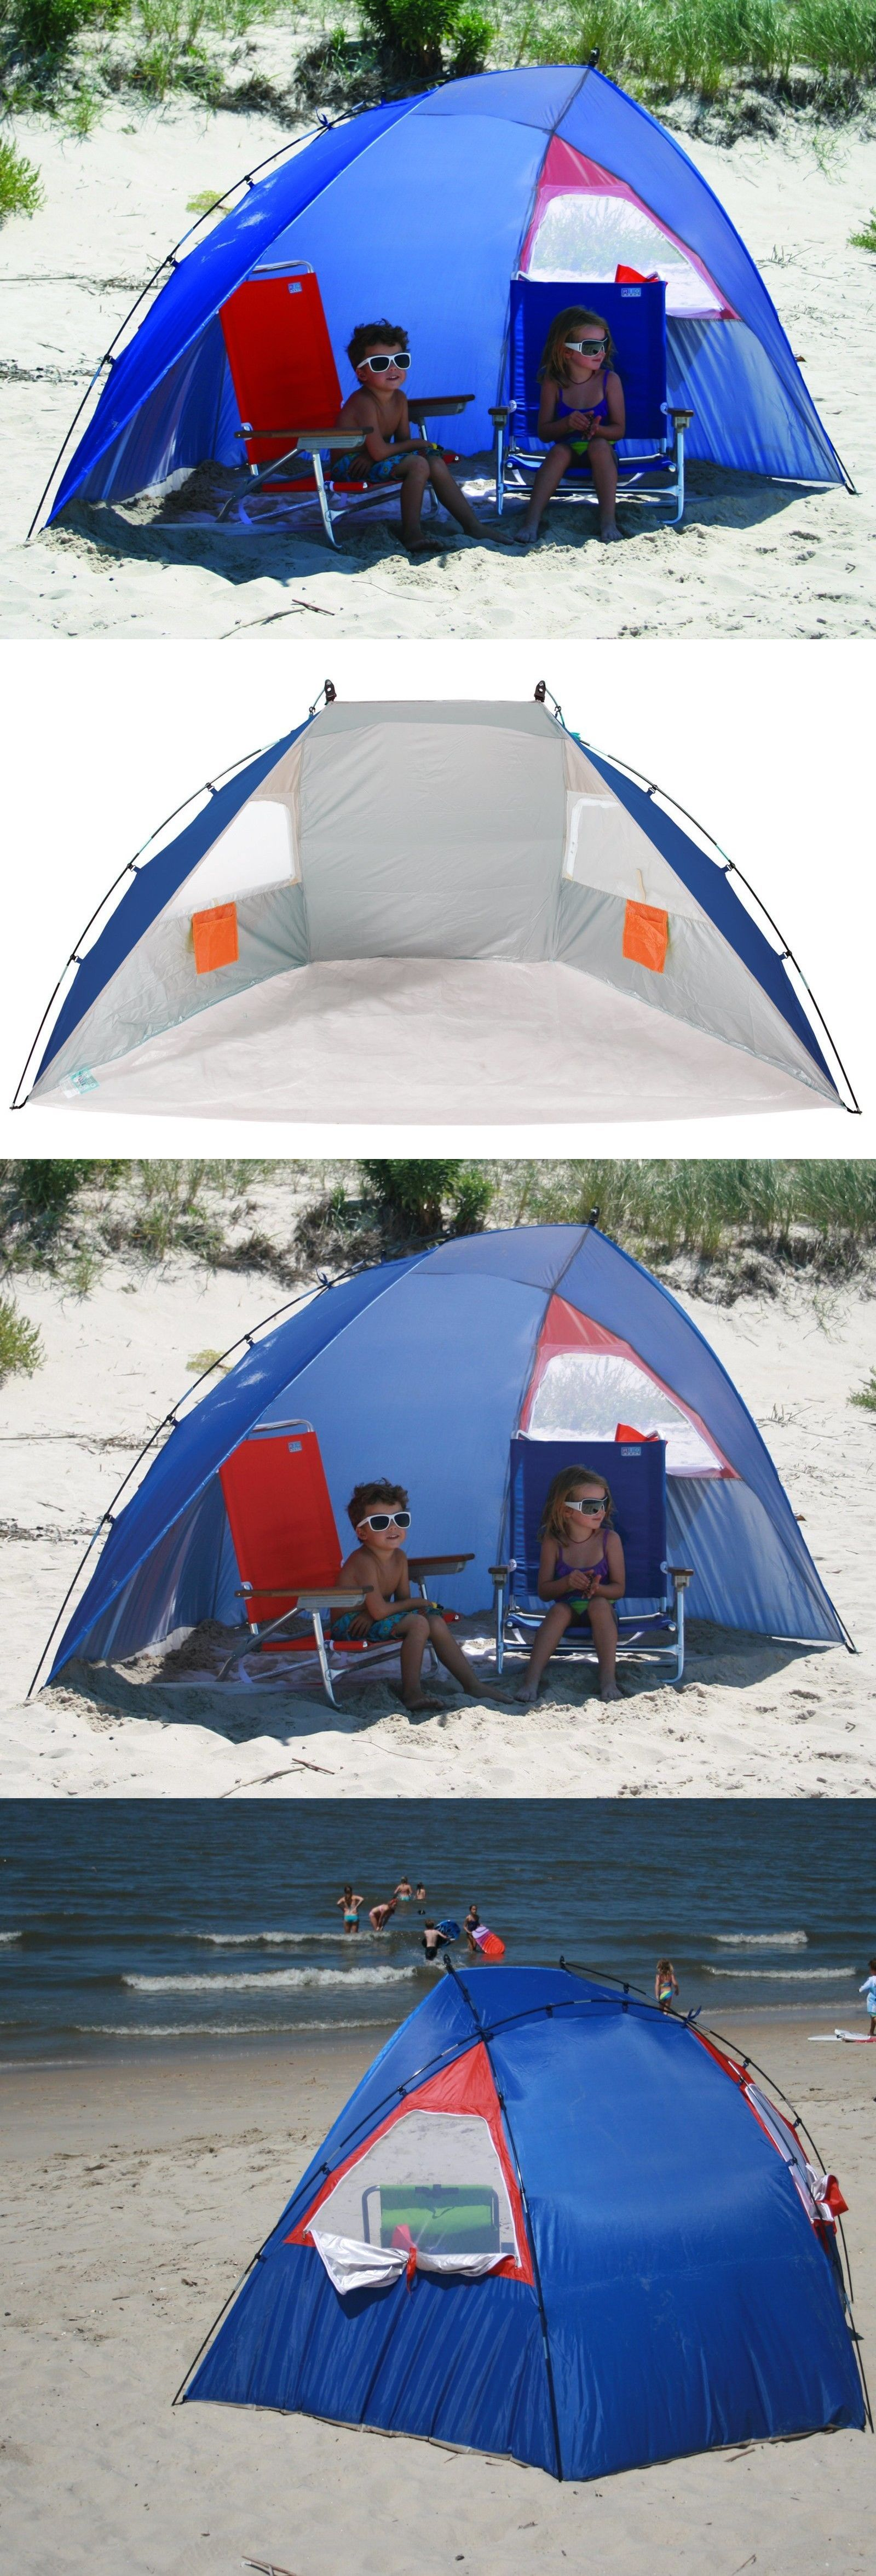 palm swb side i awning reimo lwb canopy wall beach camperco canopies sun bundle